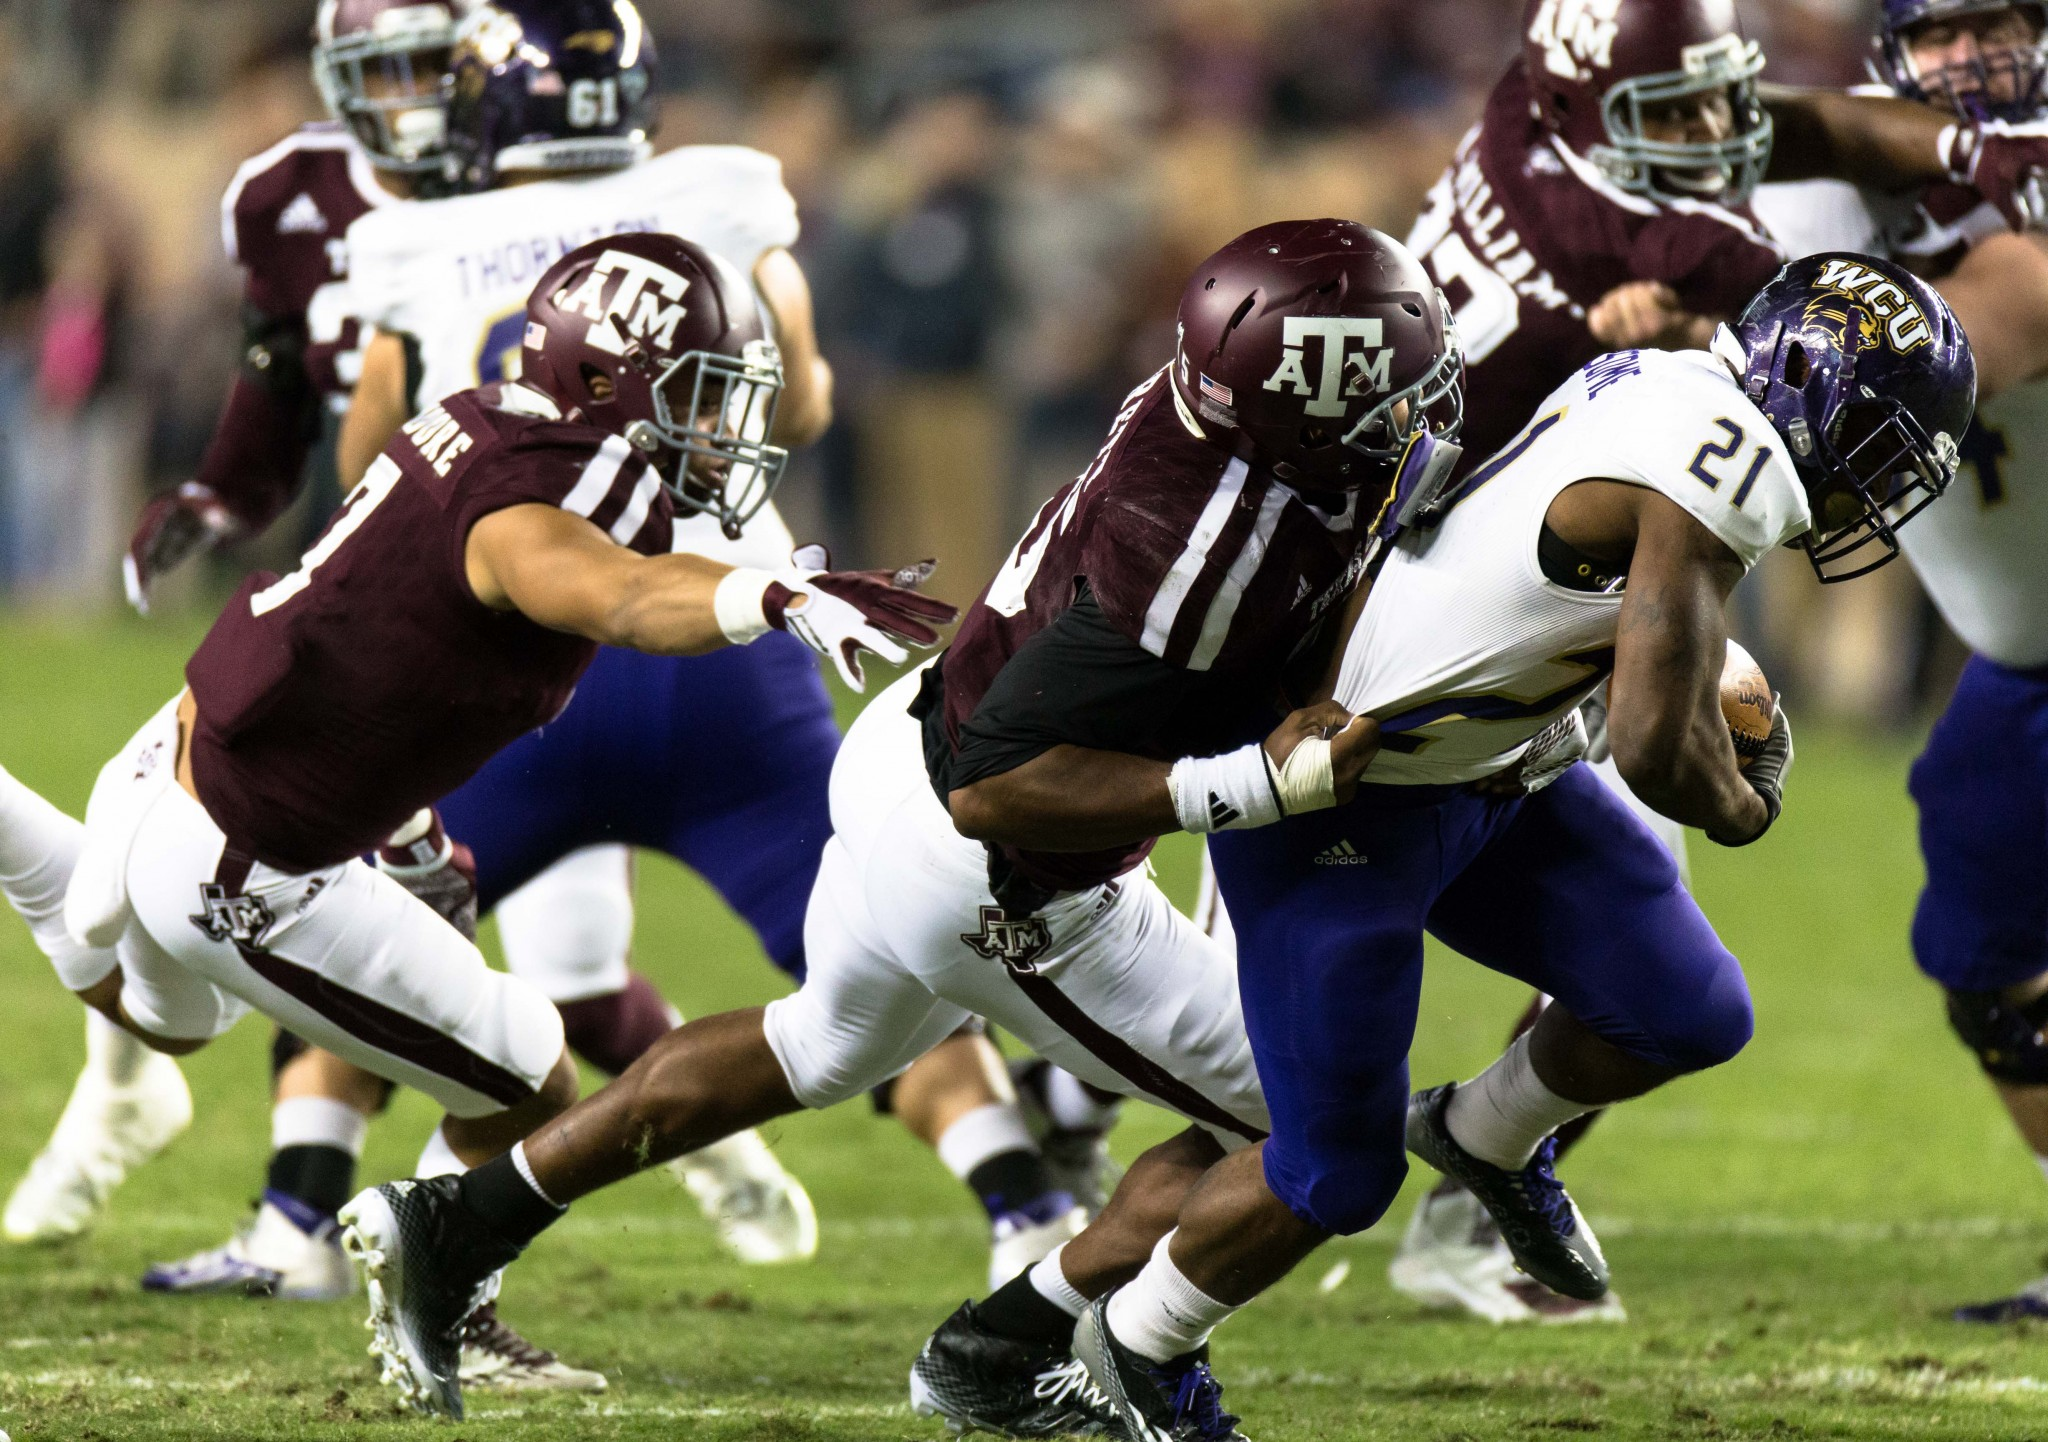 Texas A&M's Myles Garrett, left, tackles Western Carolina's Detrez Newsome (21) during the first half of an NCAA college football game Saturday, Nov. 14, 2015, in College Station, Texas. Texas A&M defeated Western Carolina 41-17. (AP Photo/Juan DeLeon)